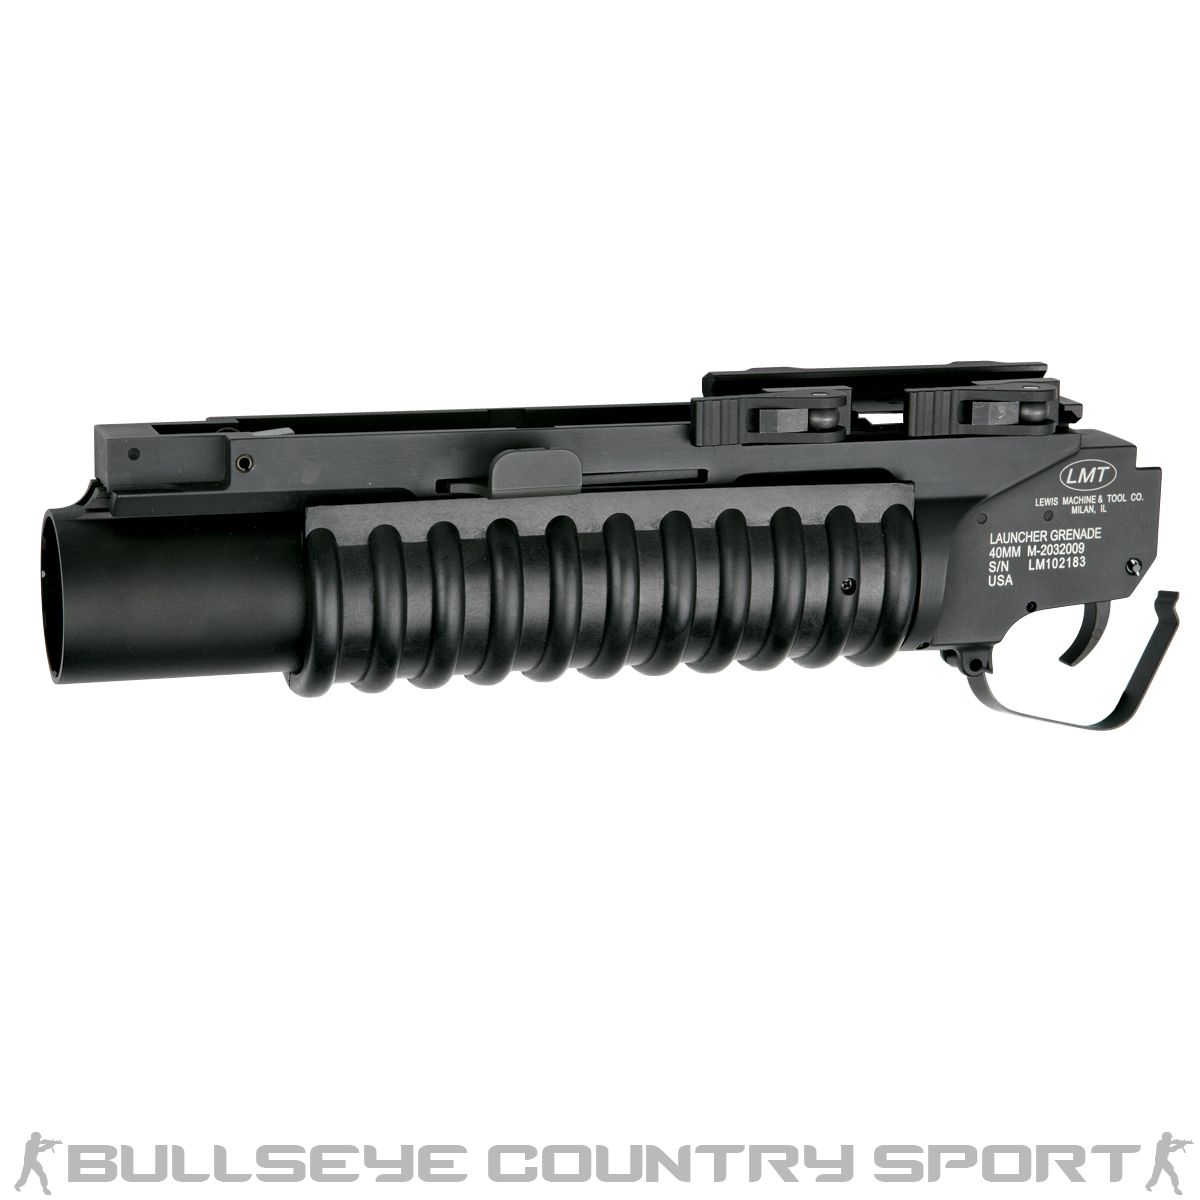 rc snow with Airsoft Lmt M203 Grenade Launcher Short Barrel 5249 P on elevationskatesnow moreover Newsletter 1 2014 likewise Rc Spike Tires in addition Article Bookofhoursfebruary additionally Entry 10606668758.